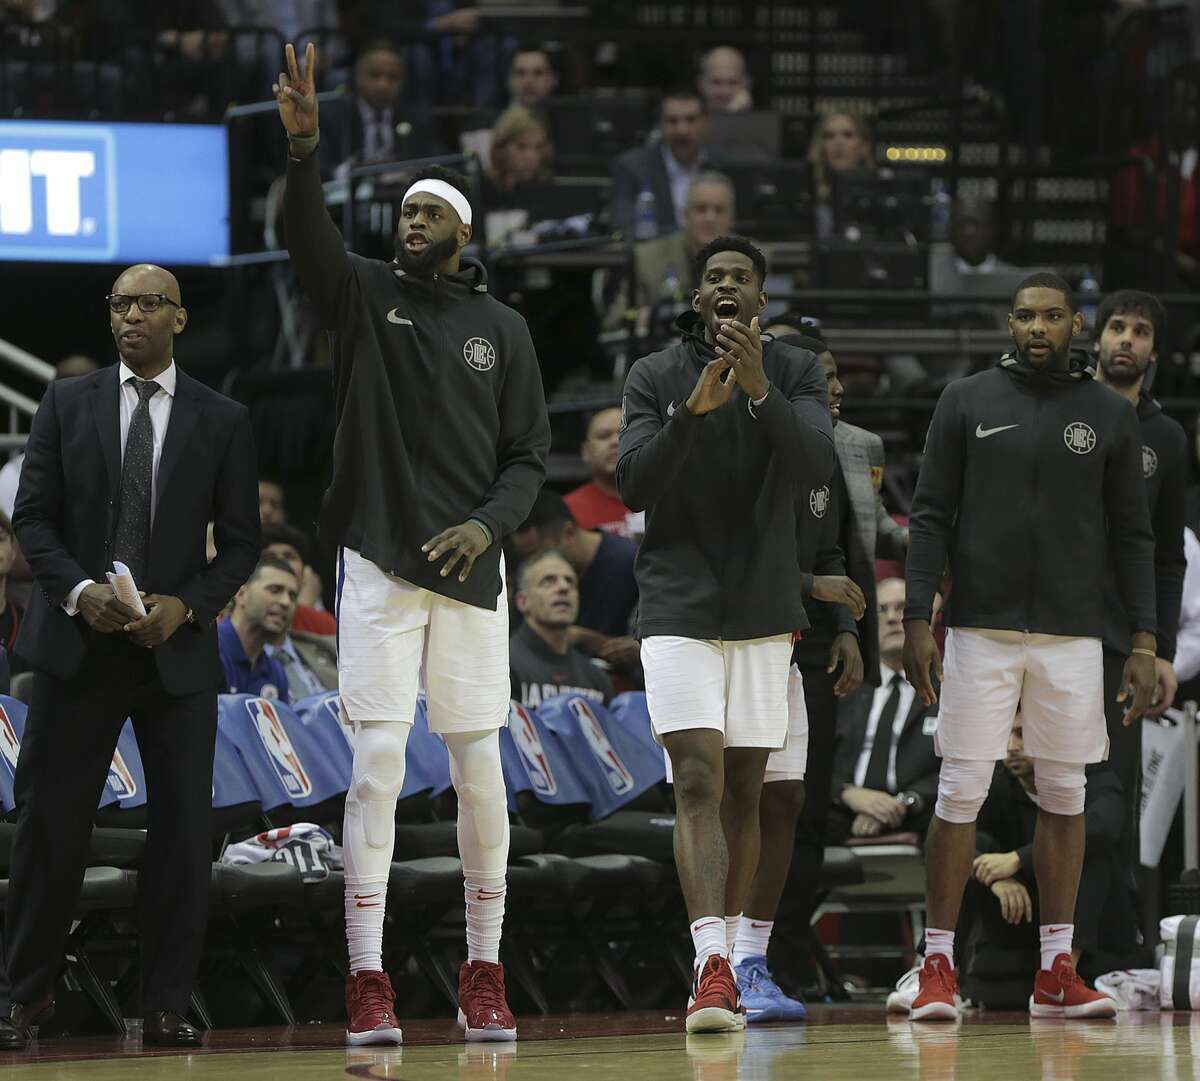 LA Clippers bench reacts to a three-point shot in the second half against the Houston Rockets at the Toyota Center on Friday, Dec. 22, 2017, in Houston. Clippers won the game 128-118. ( Elizabeth Conley / Houston Chronicle )